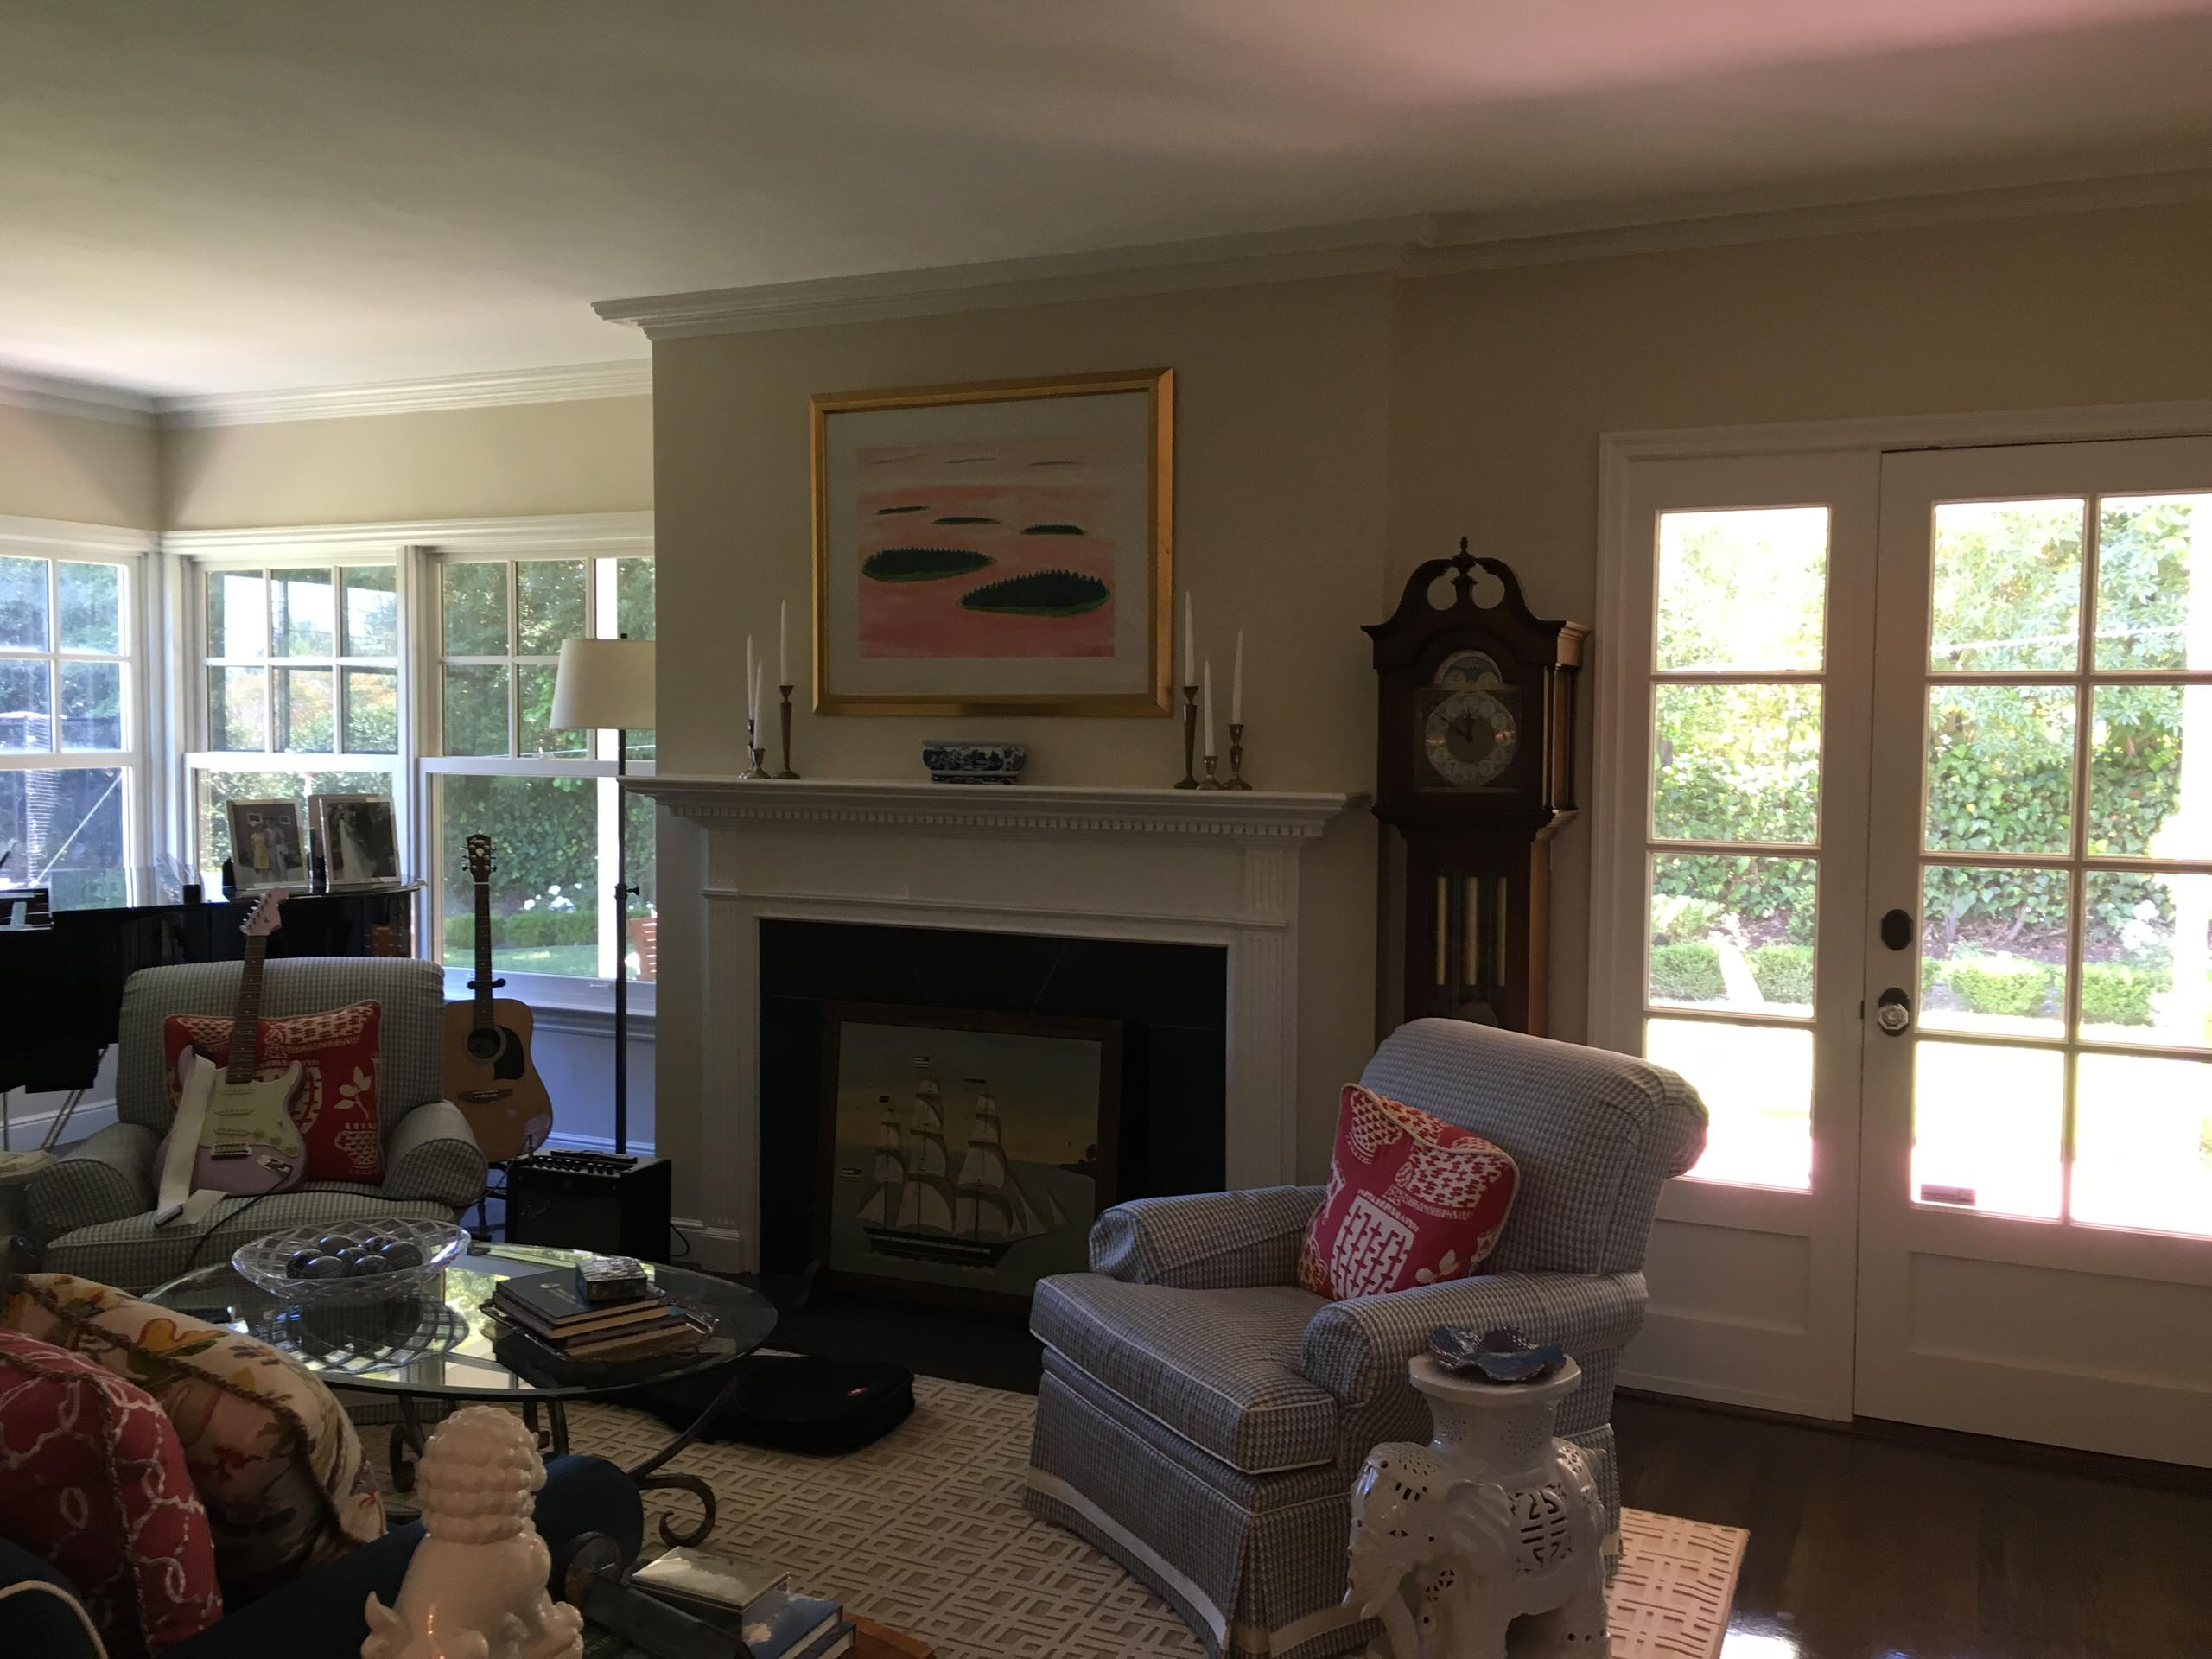 Colonial Revival - Living room, before